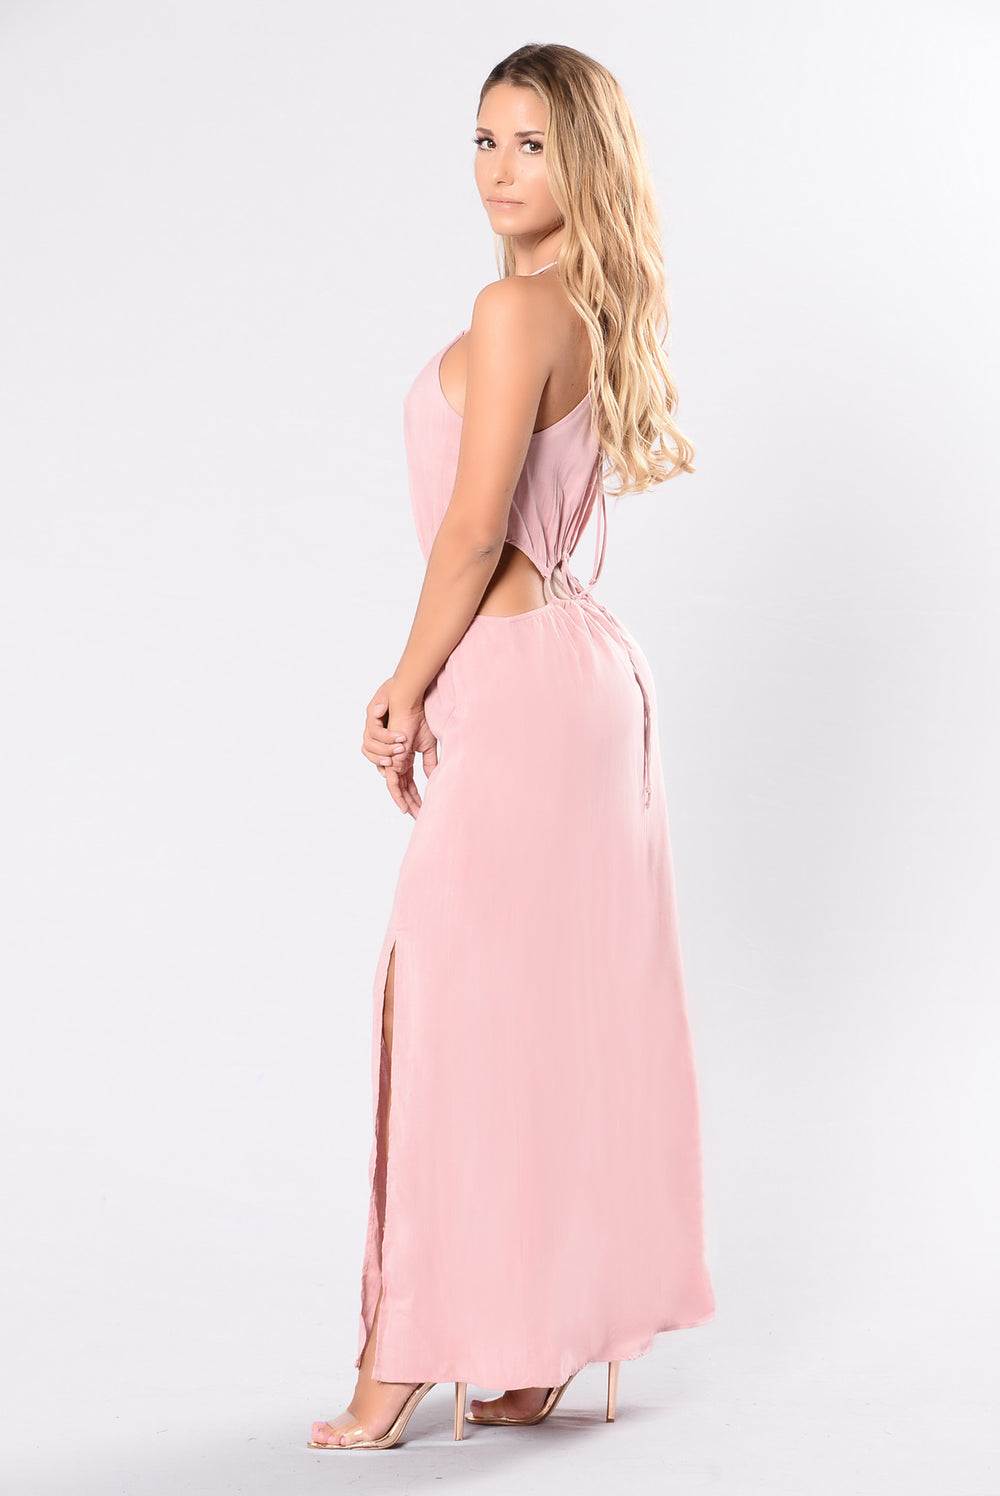 Slit Bit Dress - Mauve